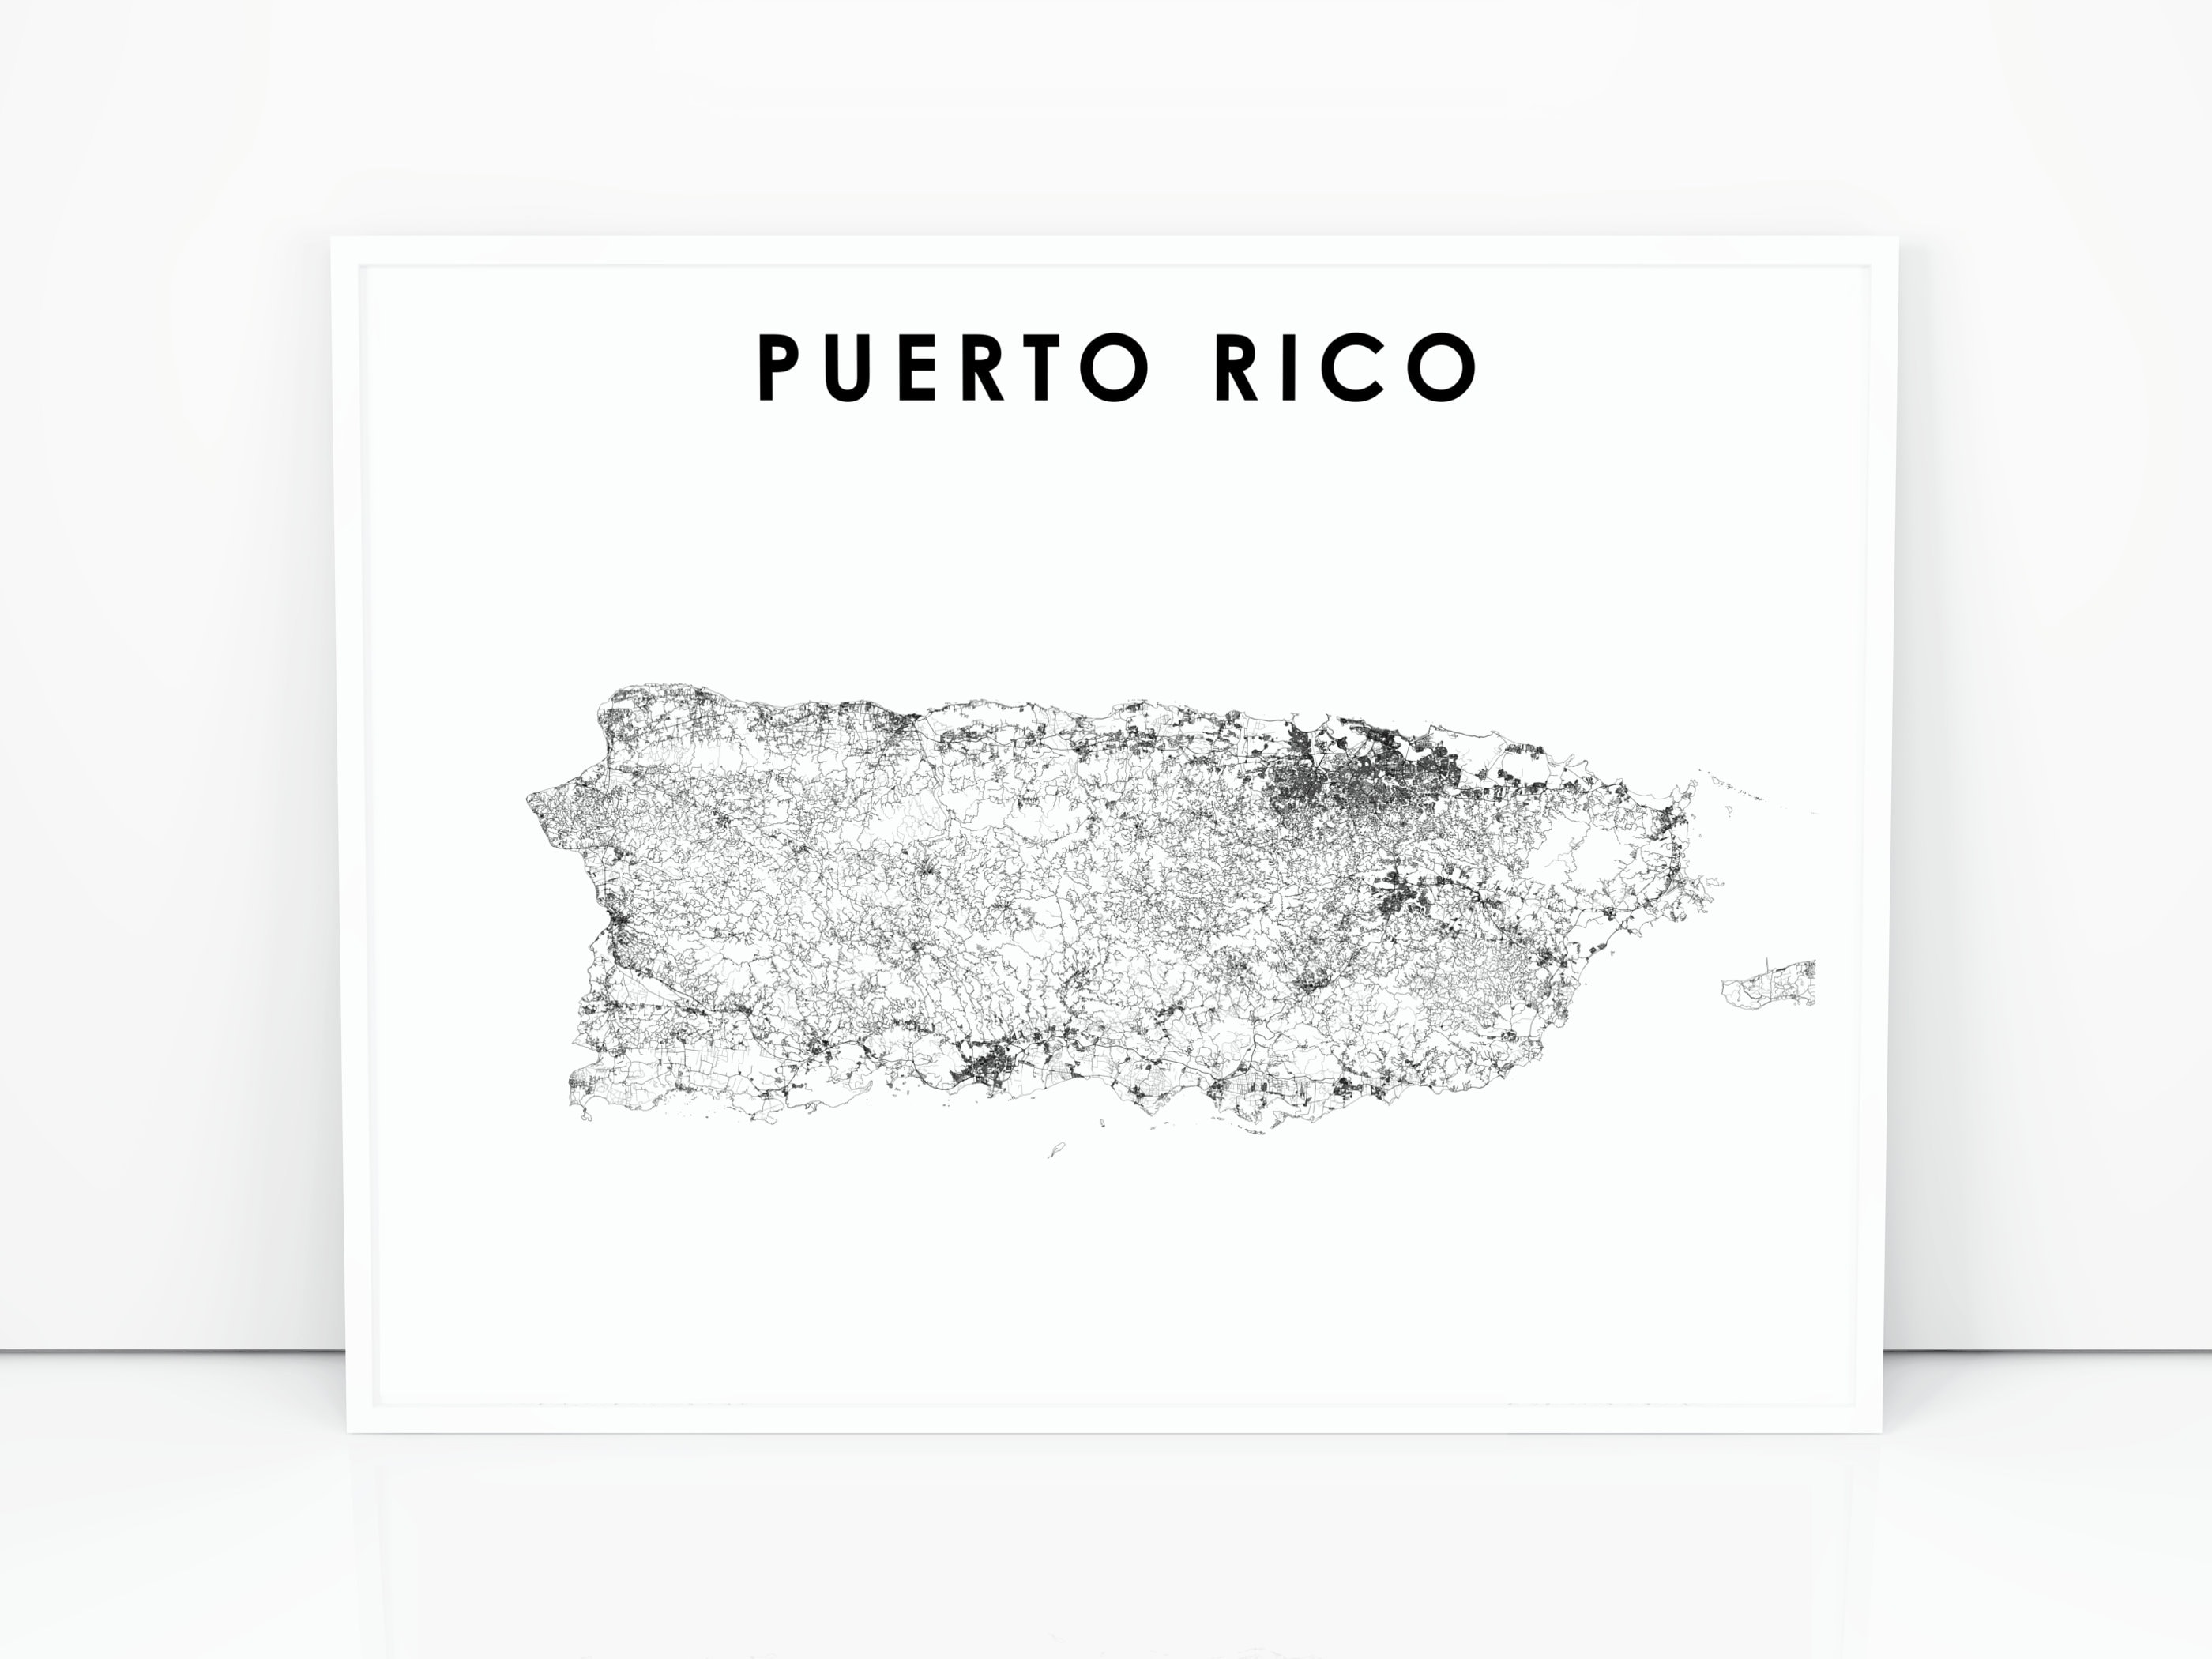 graphic regarding Printable Maps of Puerto Rico referred to as Puerto Rico Map Print, Street Map Poster, San Juan, Nation Map Artwork, Nursery Space Wall Business Decor, Printable Map